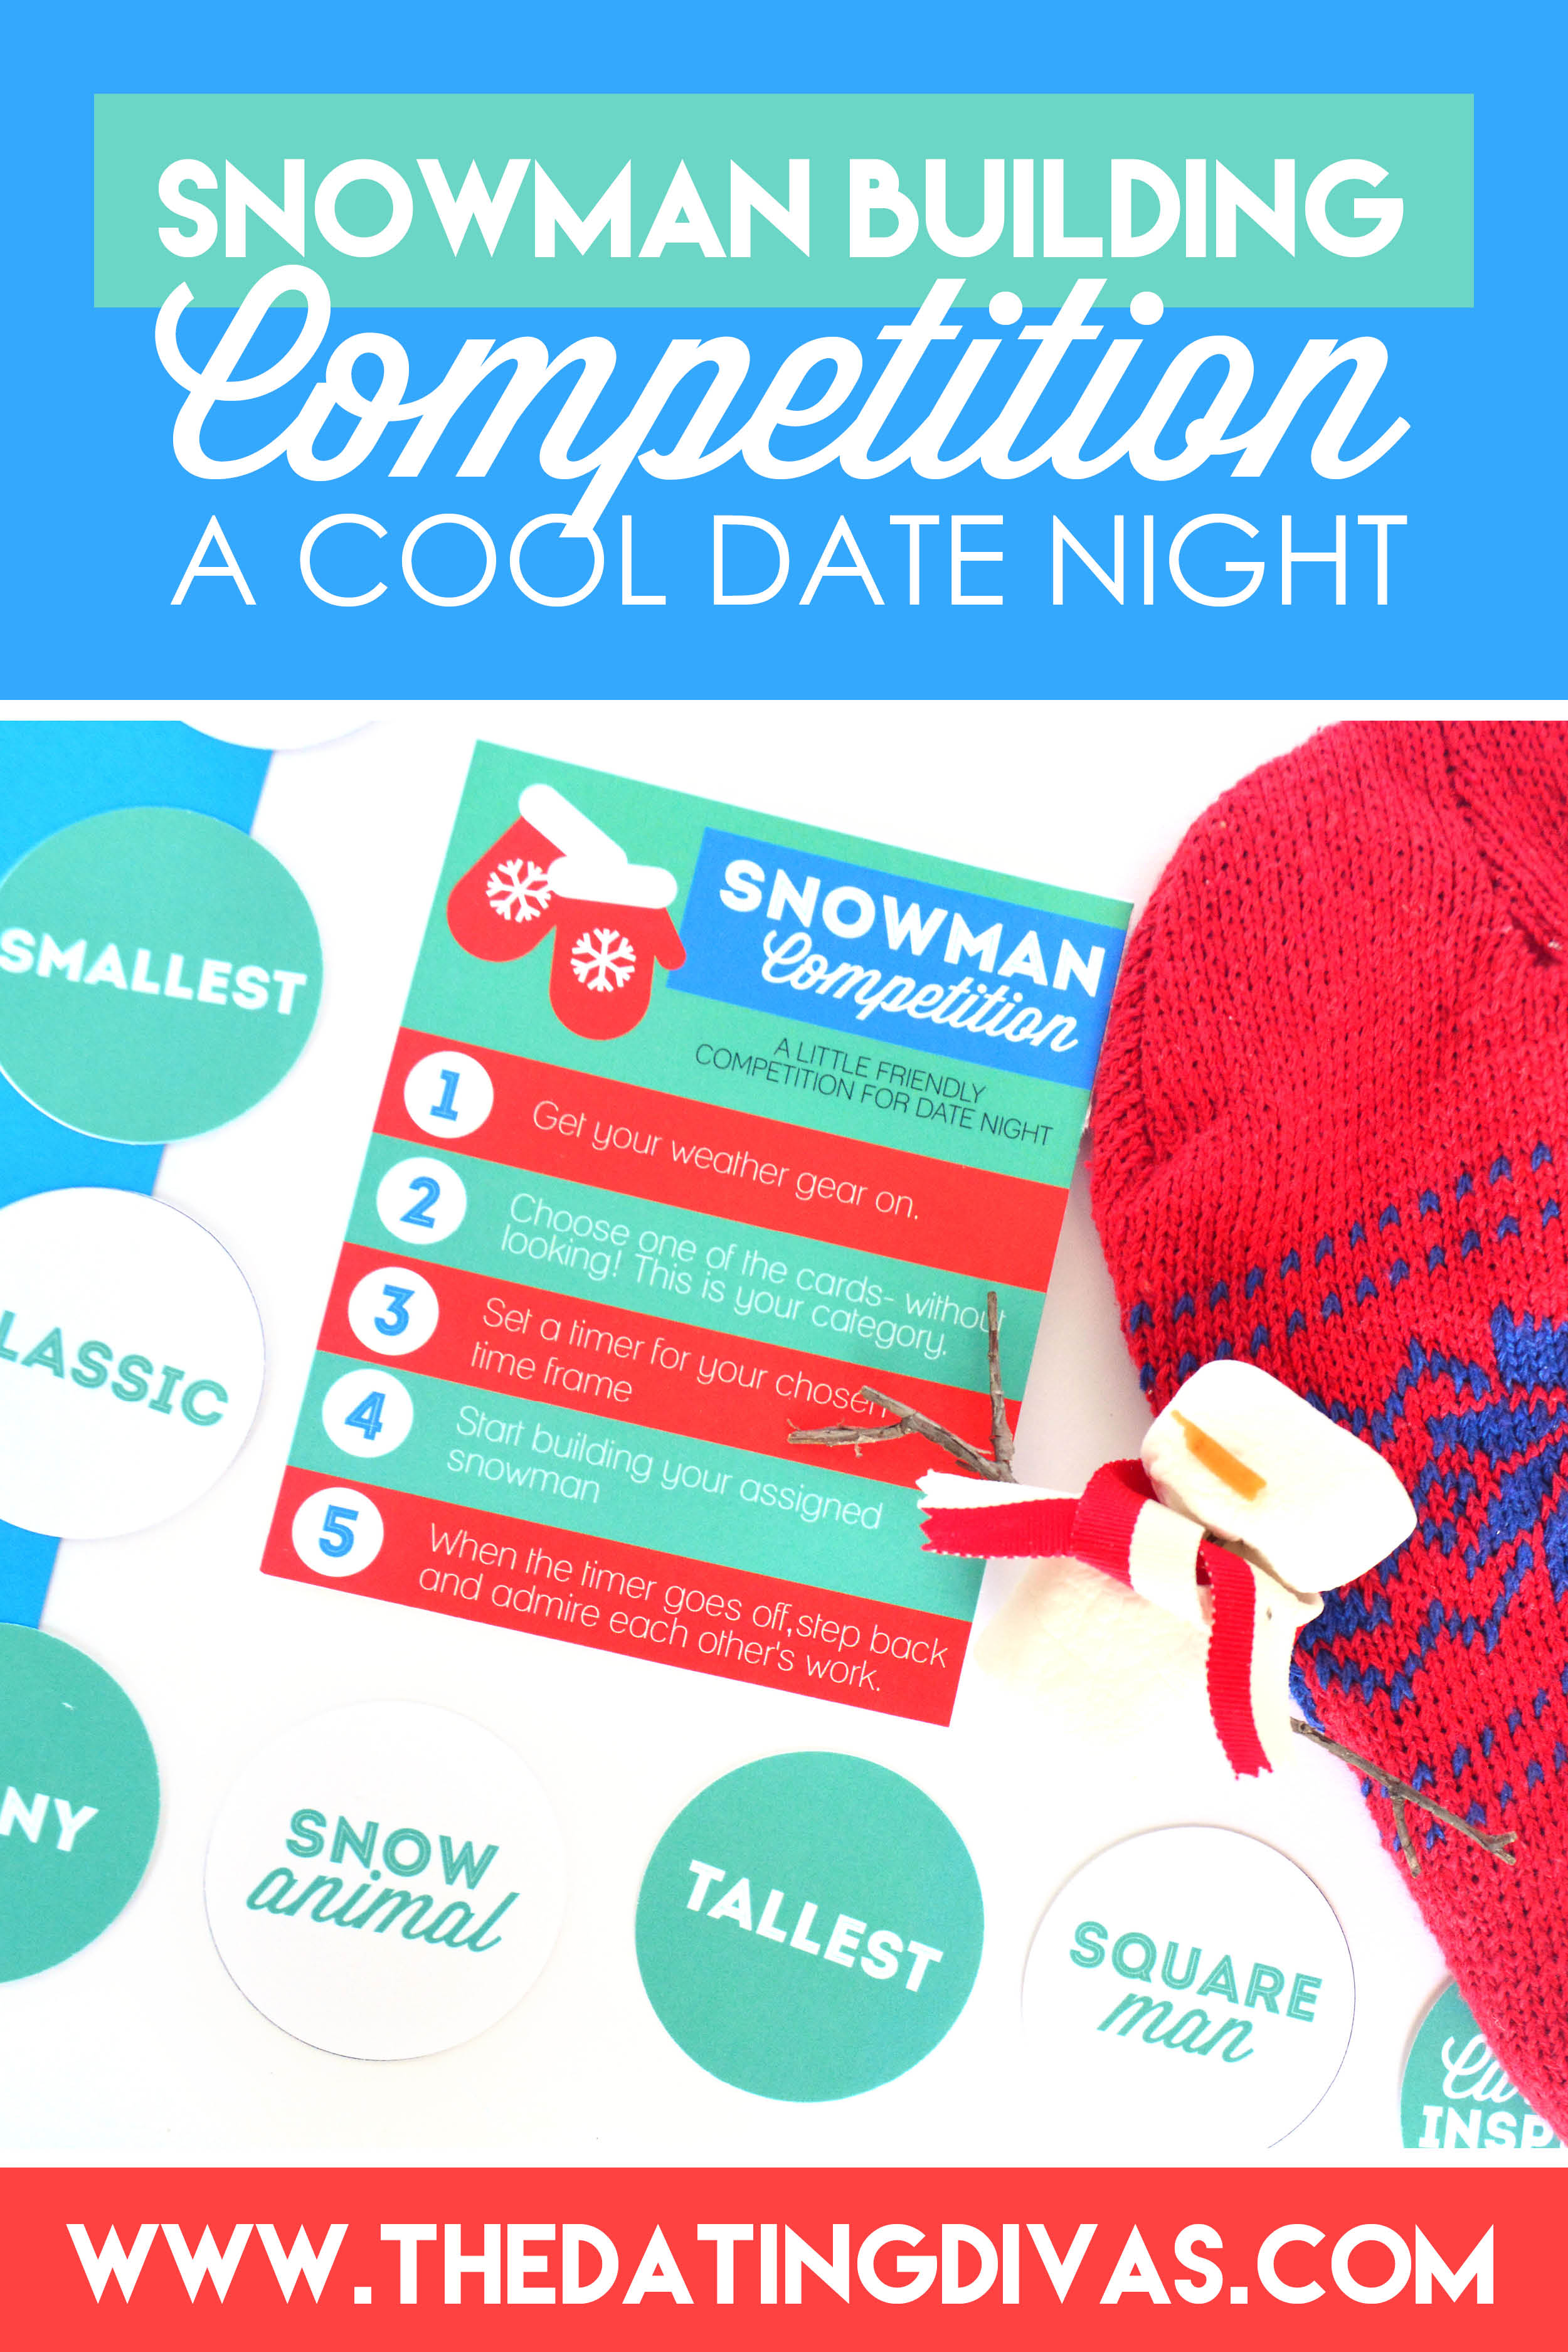 How to Build a Snowman Date Night